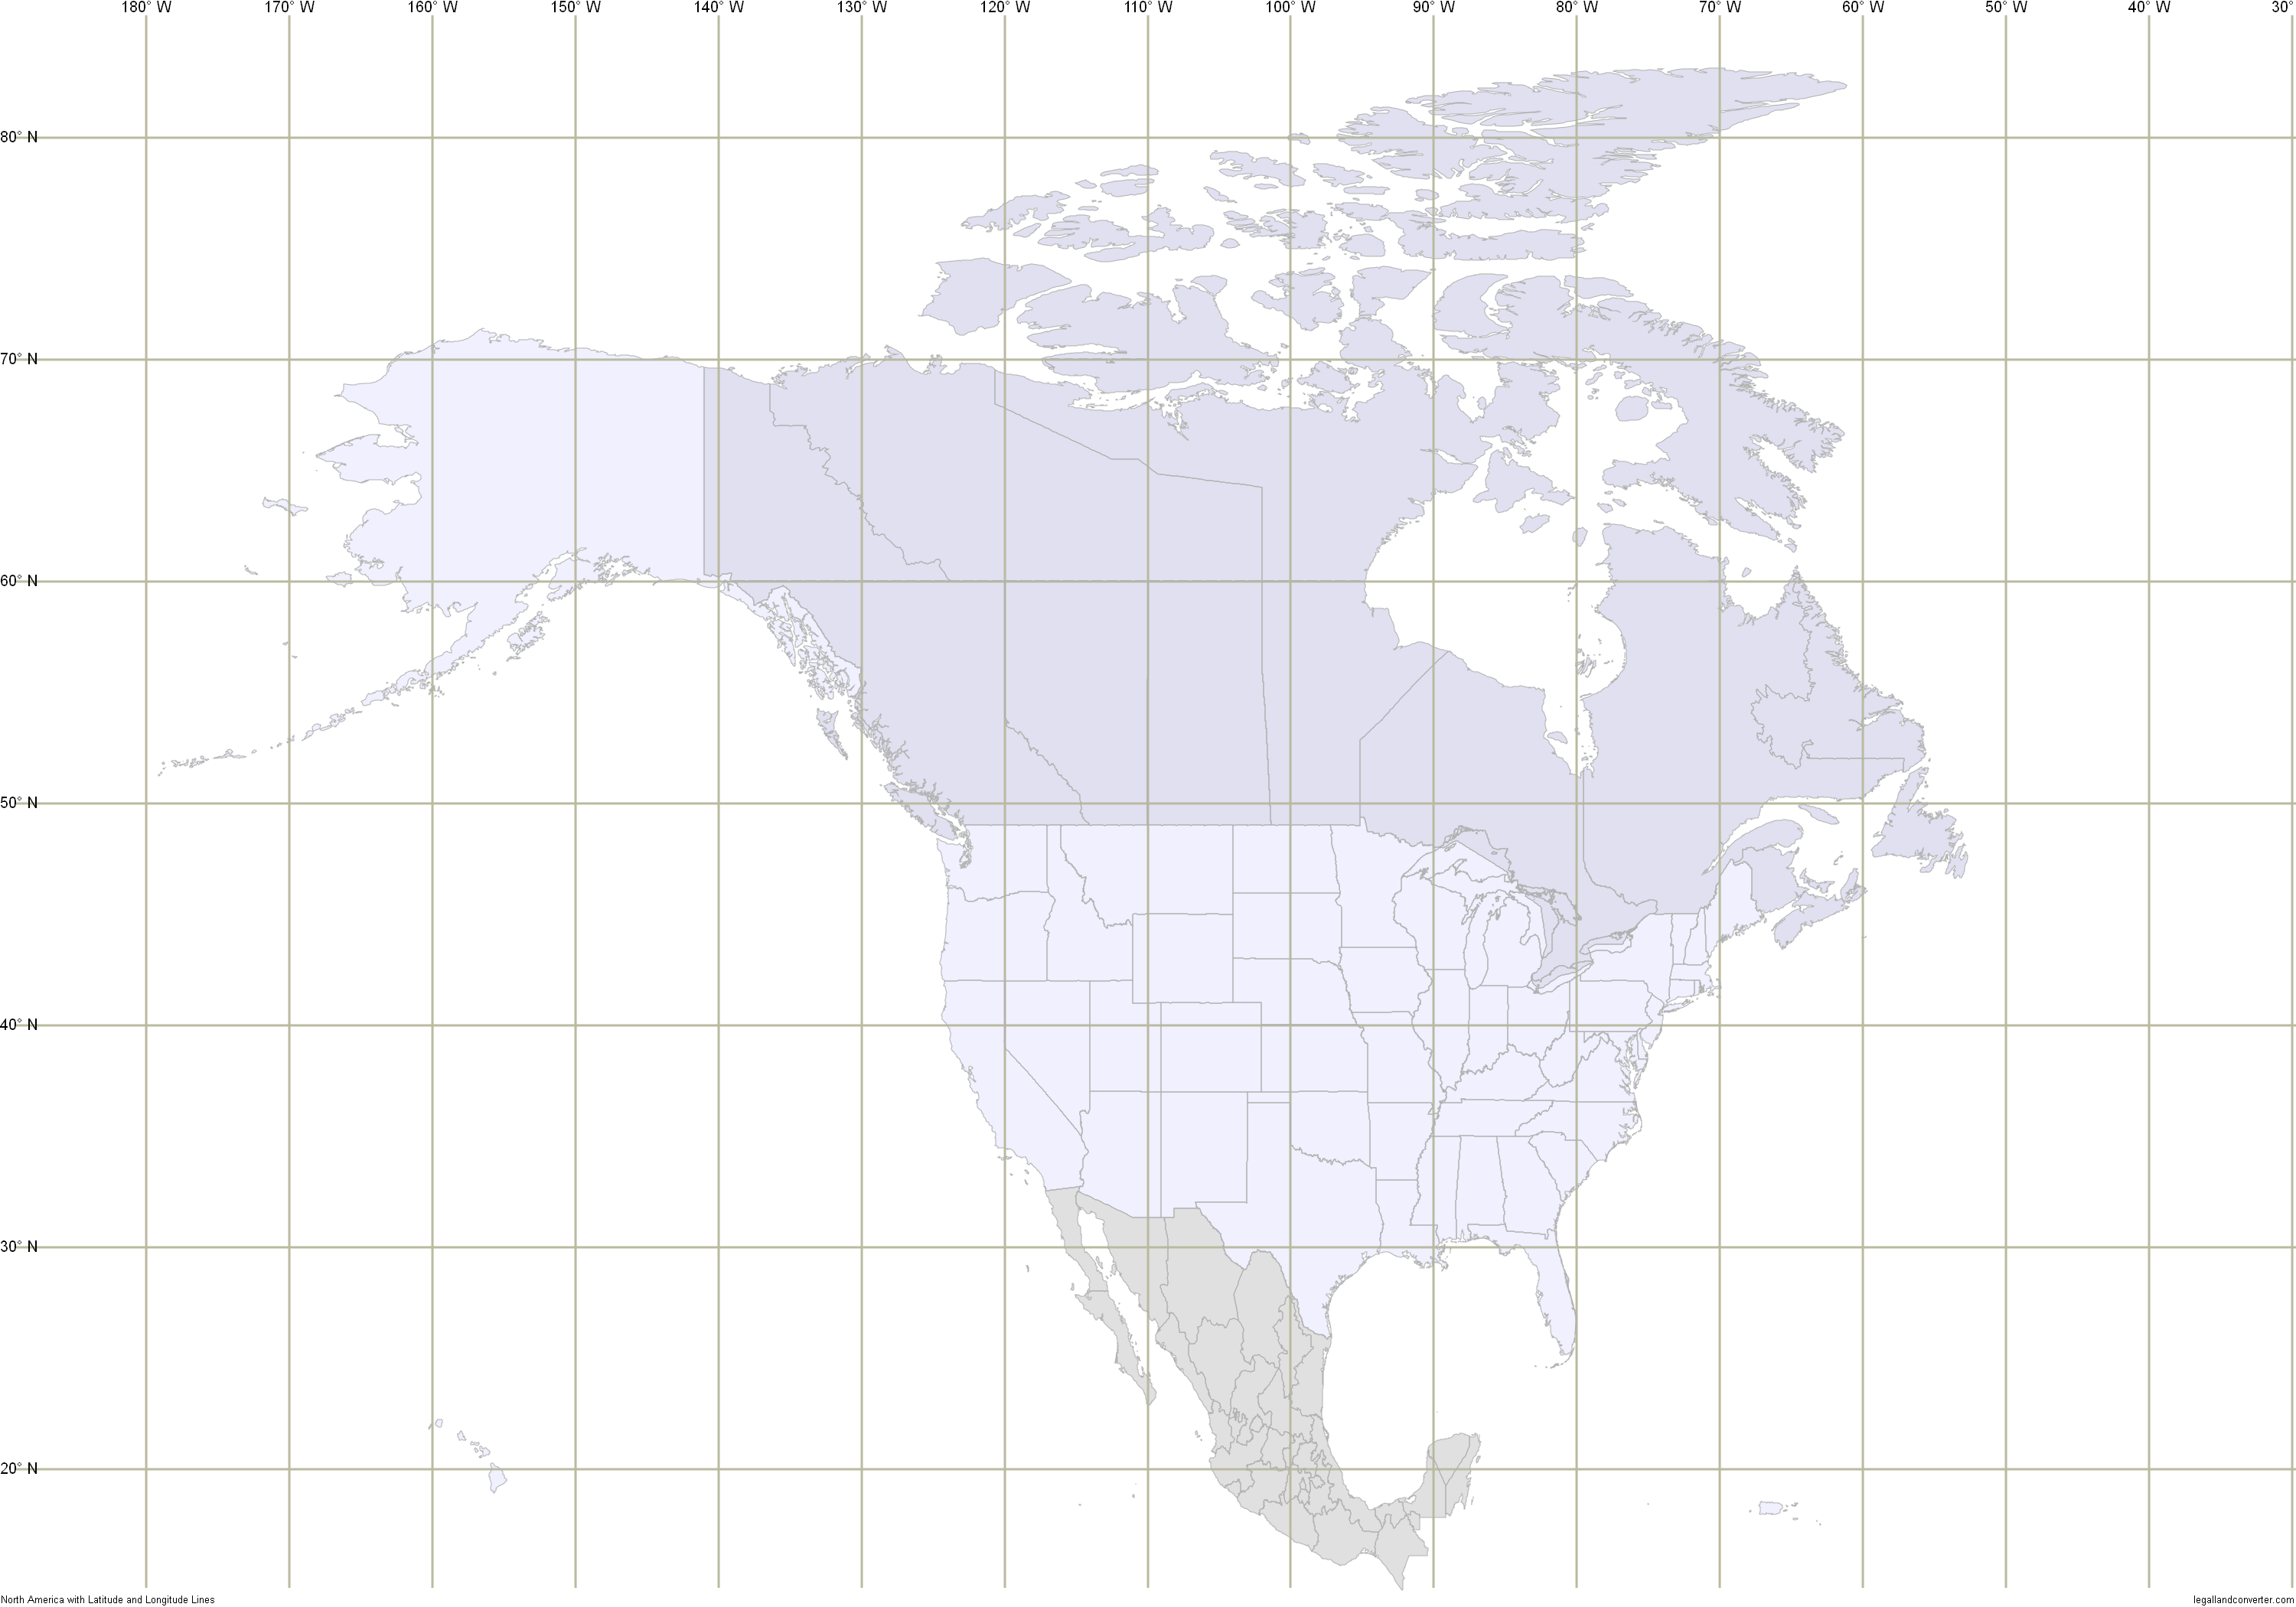 Map Of North America With Latitude And Longitude Grid - Location on map with latitude and longitude